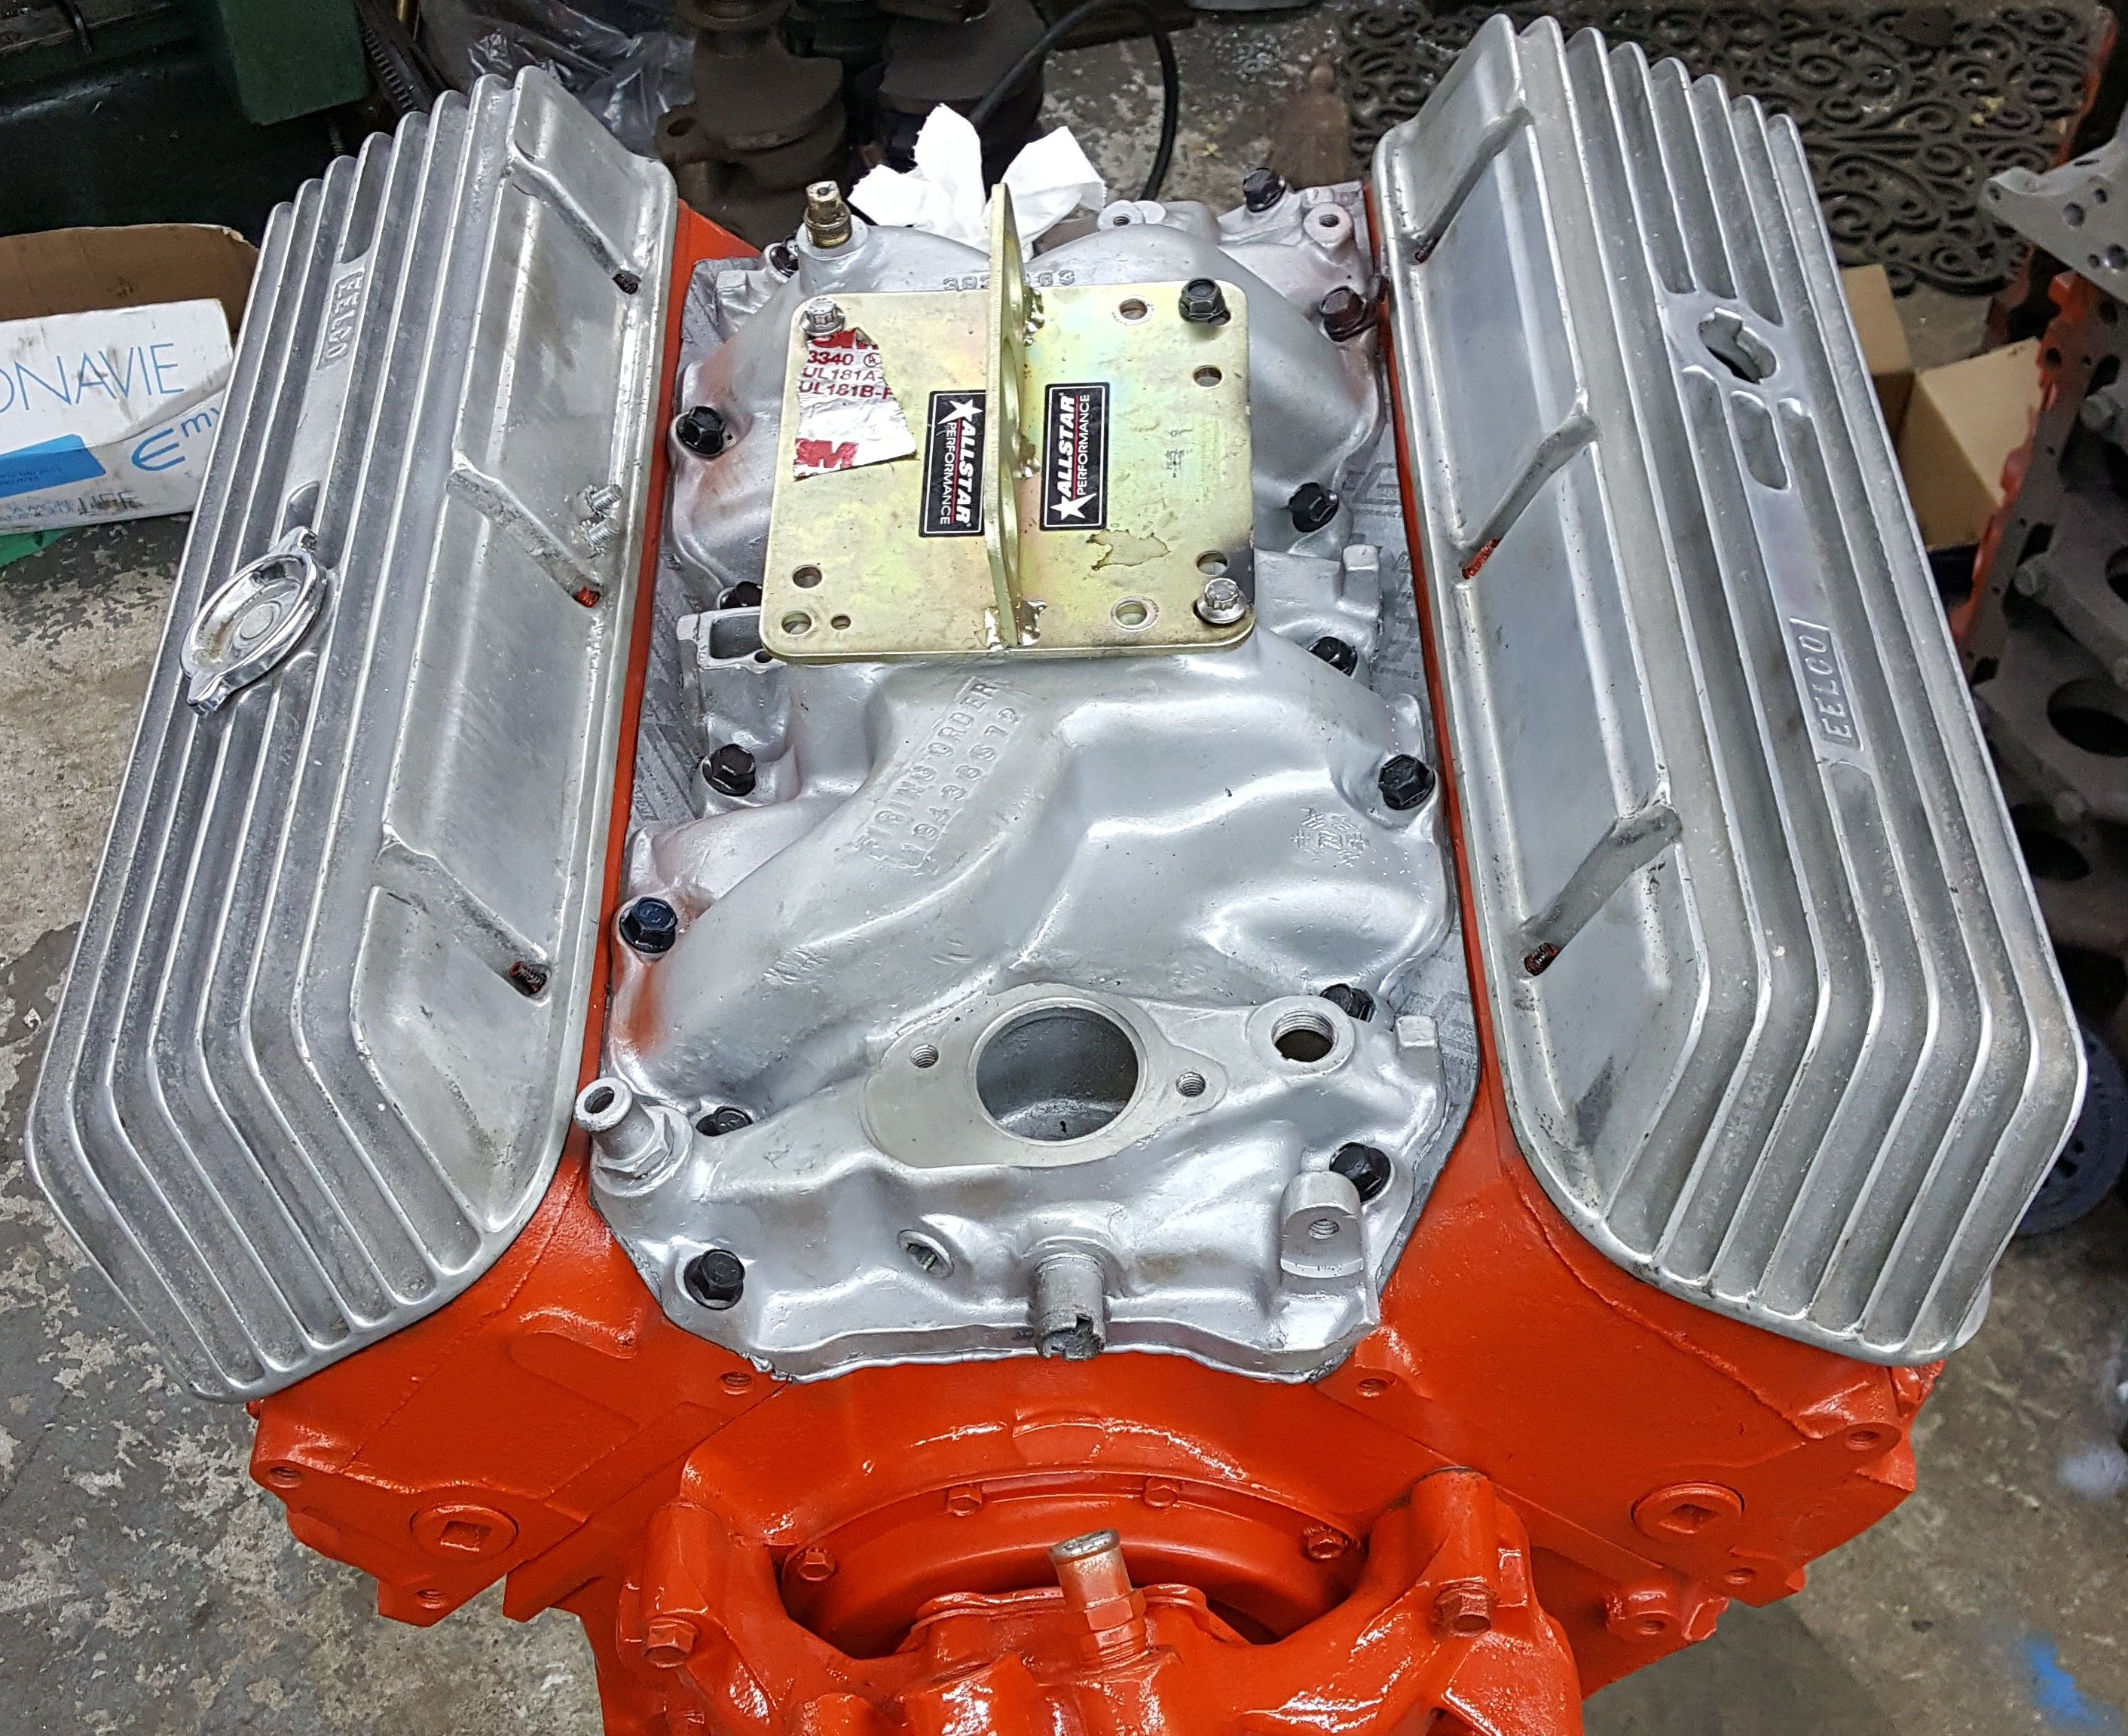 small resolution of 1995 chevy impala ss engine diagram further big block chevy oval 1995 chevy impala ss engine diagram further big block chevy oval port